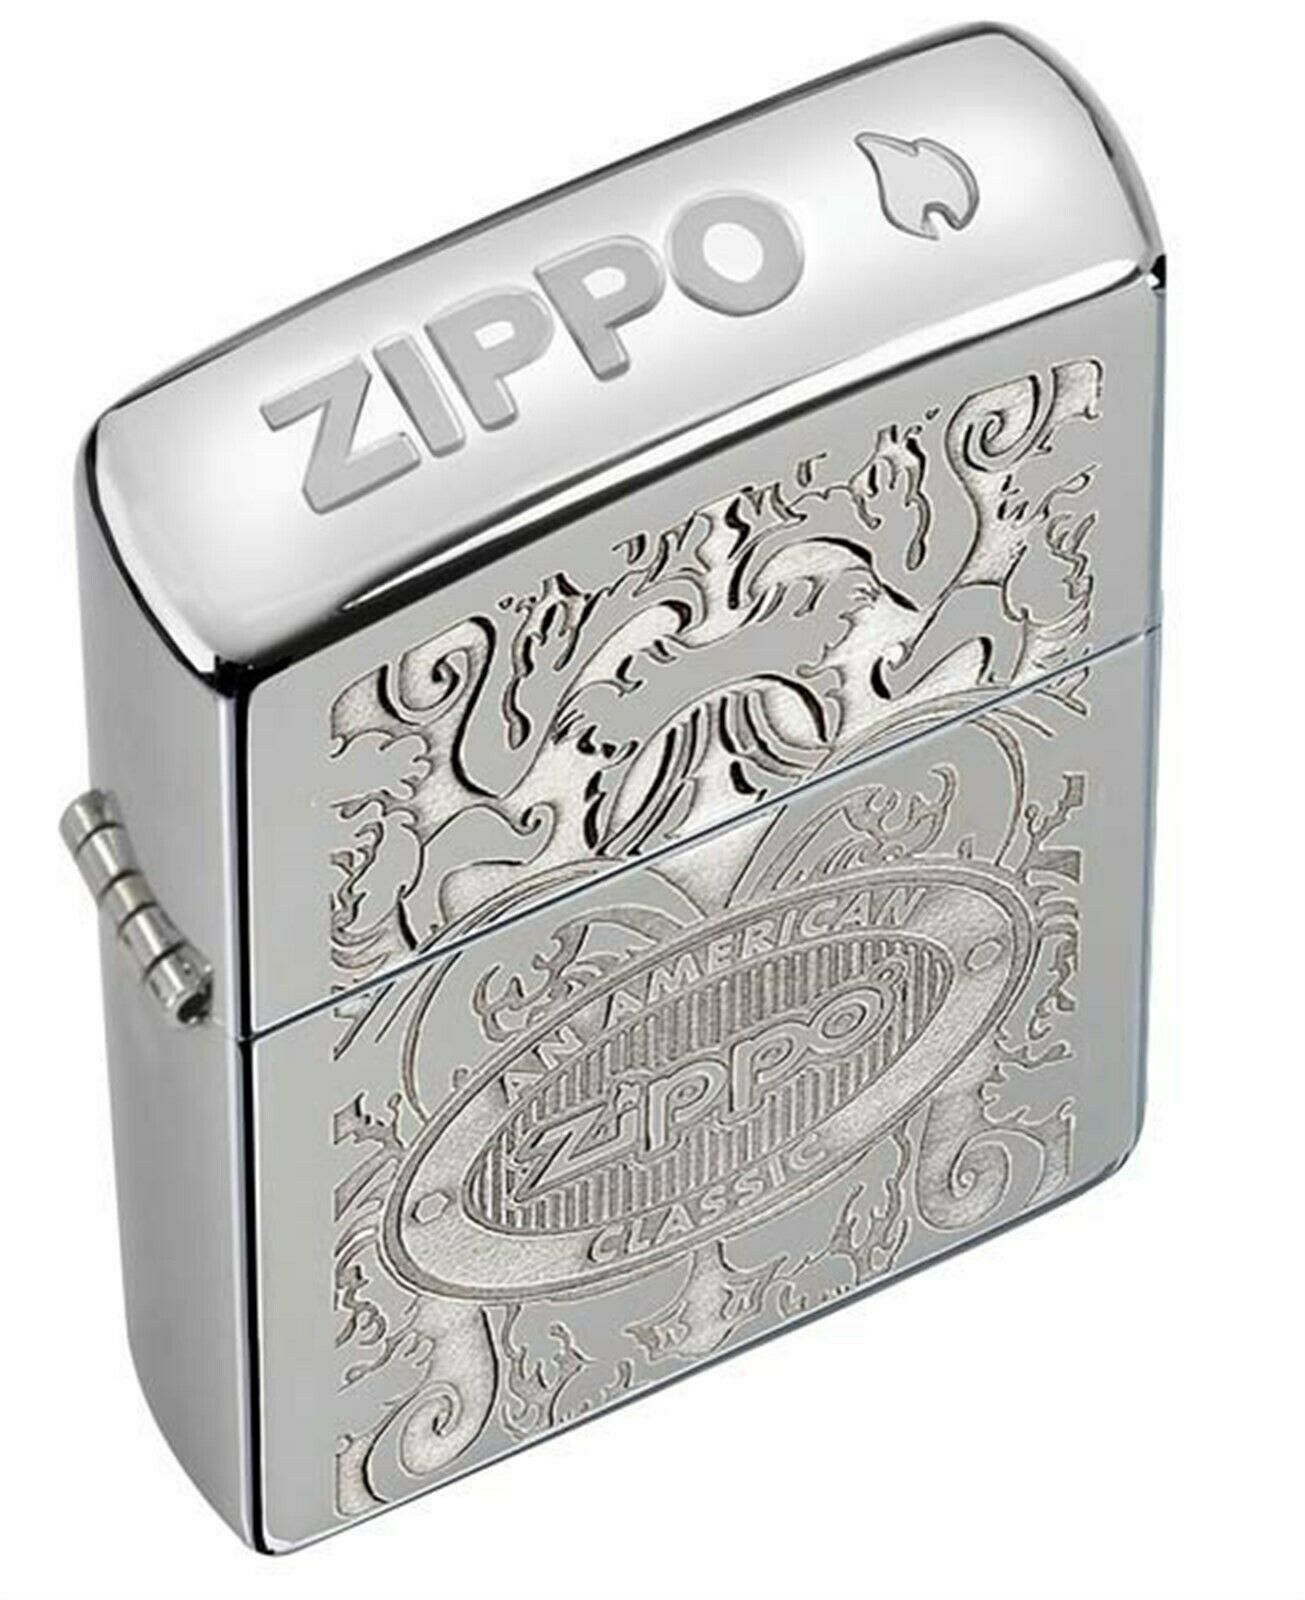 Zippo Pipe Lighter: American Classic, Crown Stamp - High Pol